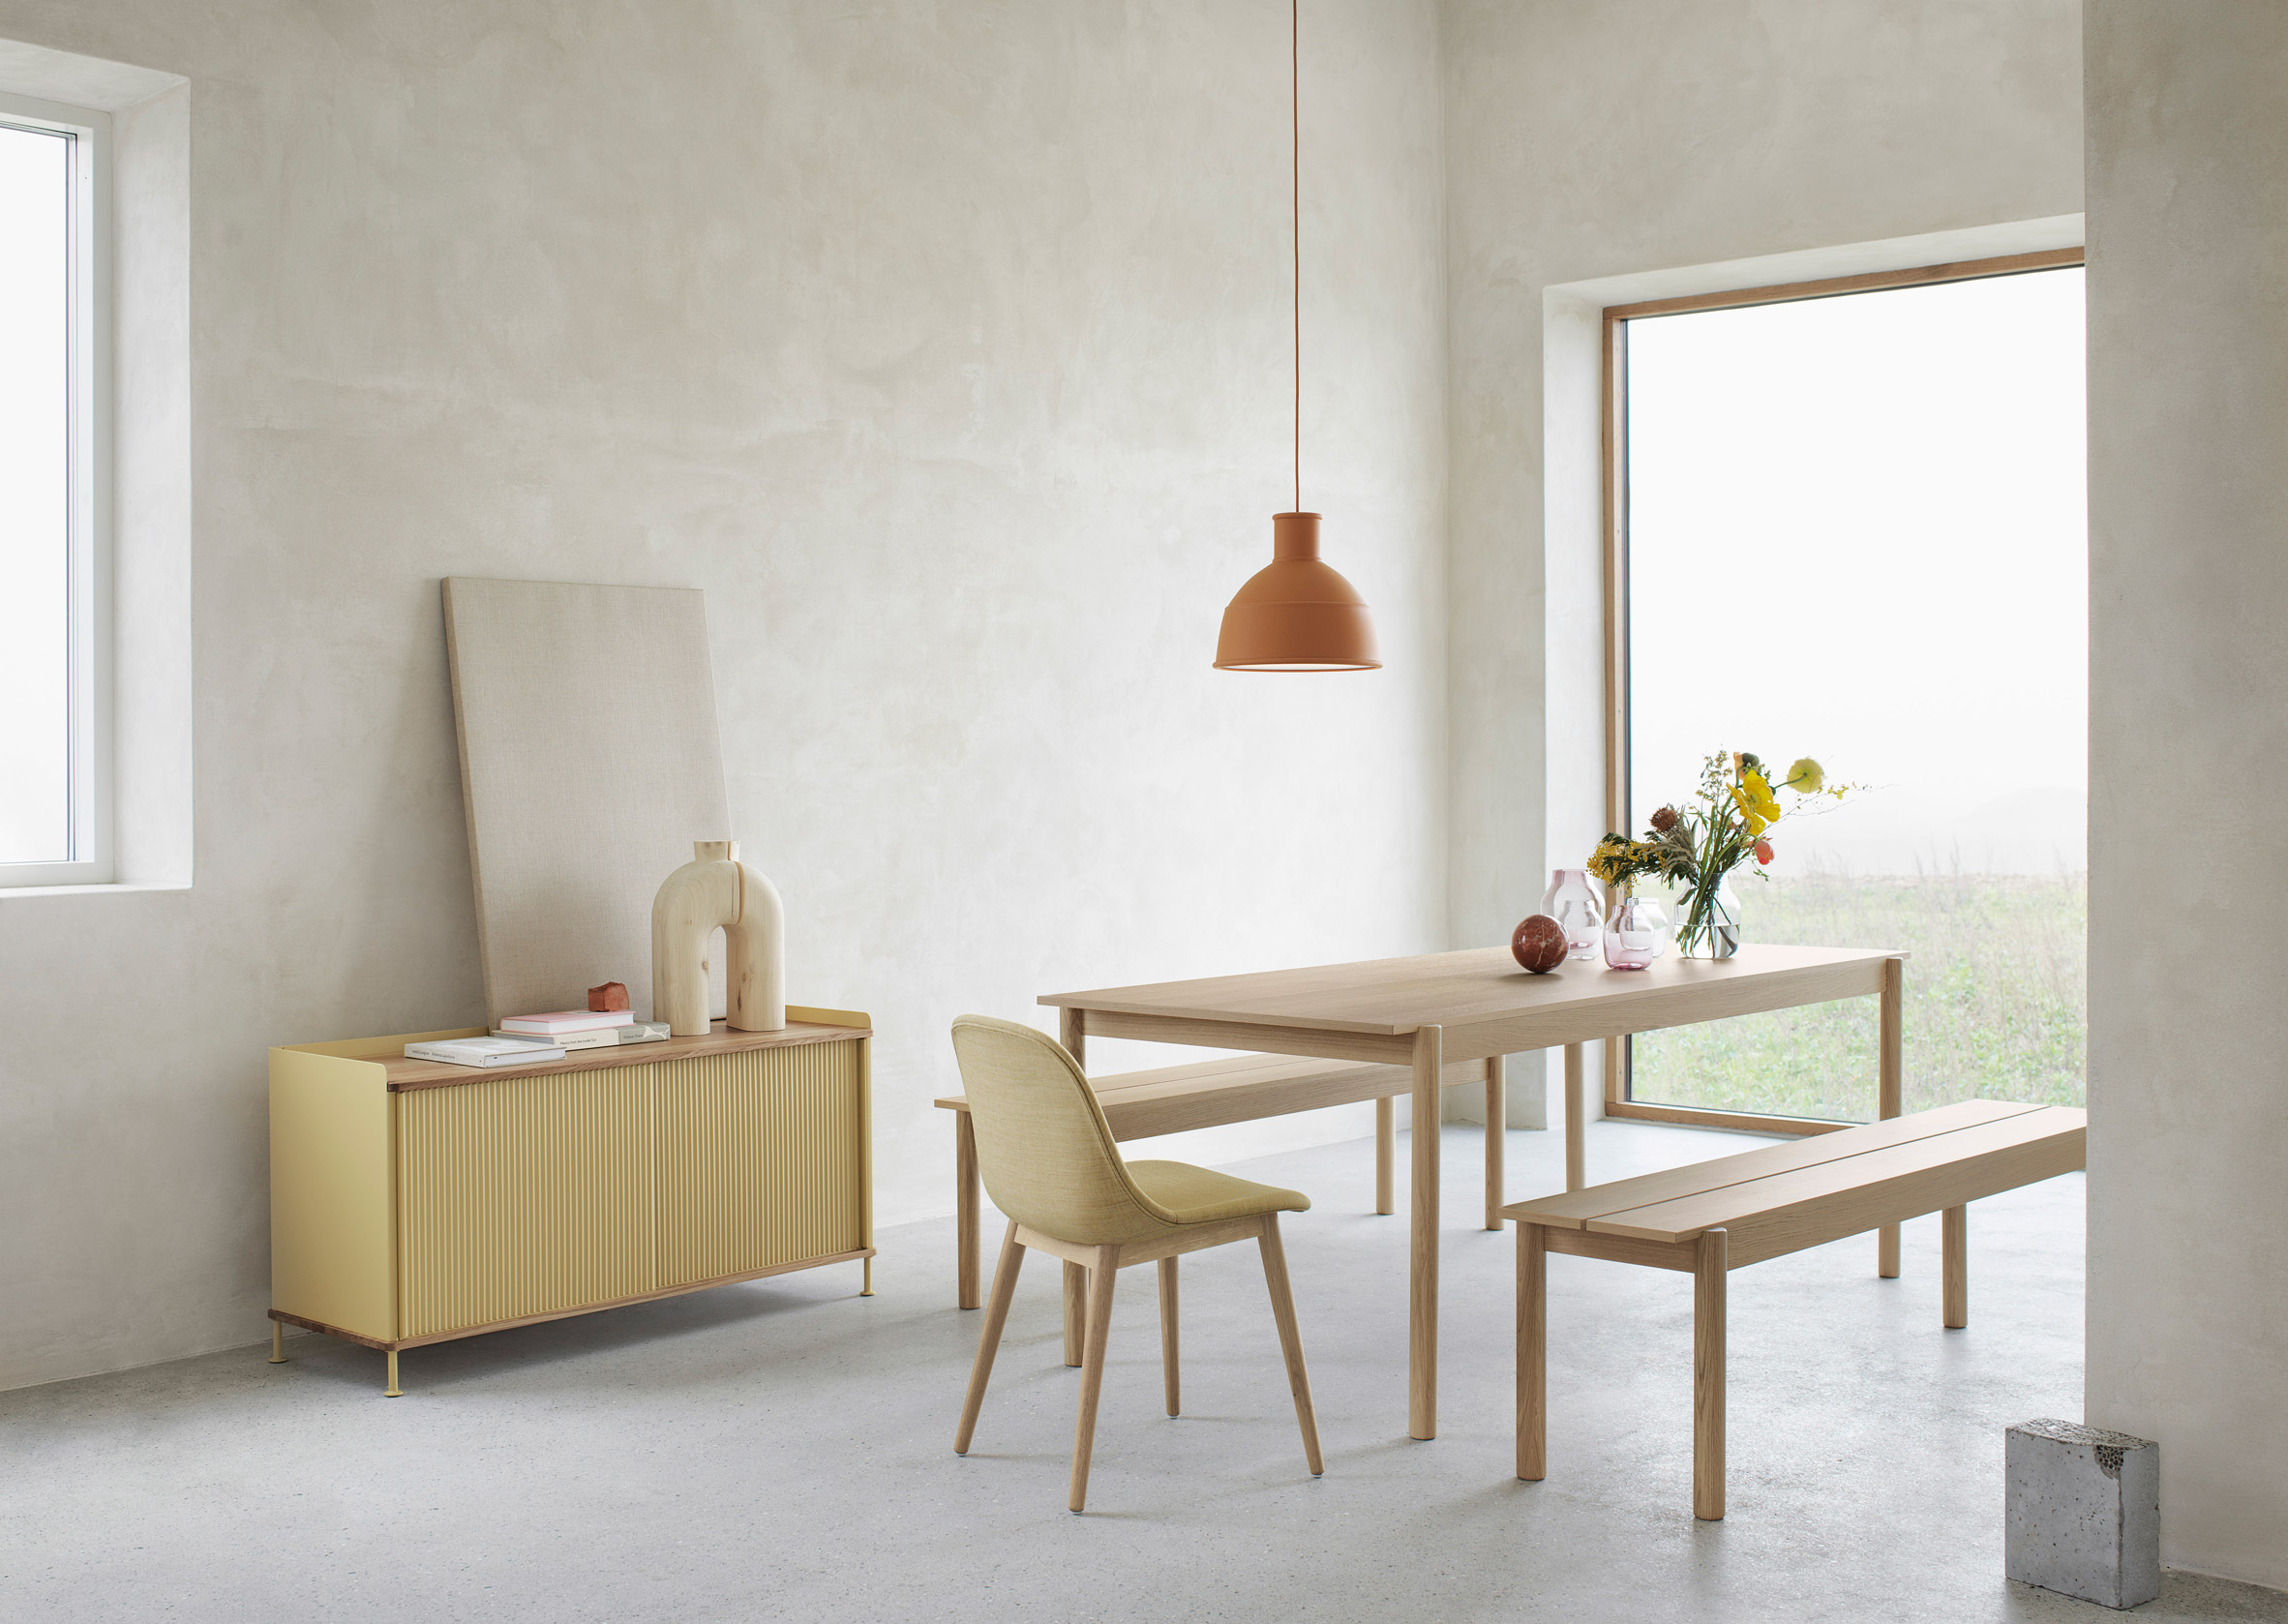 Wondrous Thomas Bentzen Designs Linear Wood Dining Table And Bench Ocoug Best Dining Table And Chair Ideas Images Ocougorg